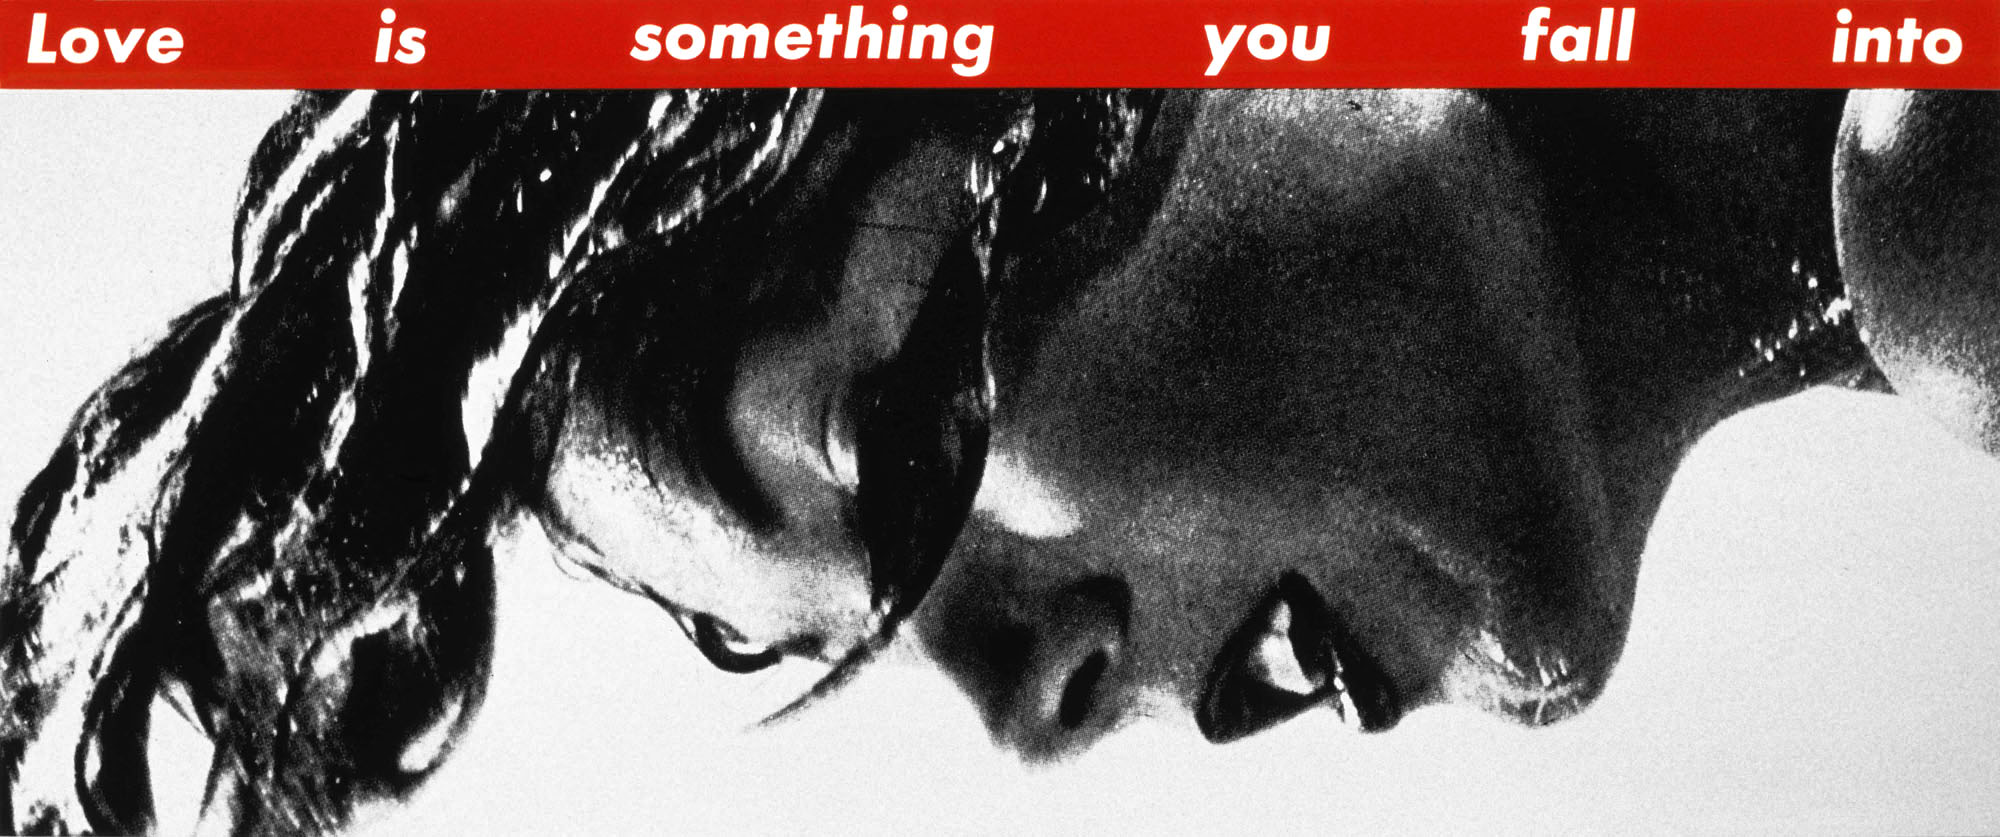 barbara kruger you thrive on mistaken identity art blart barbara kruger untitled love is something you fall into 1990